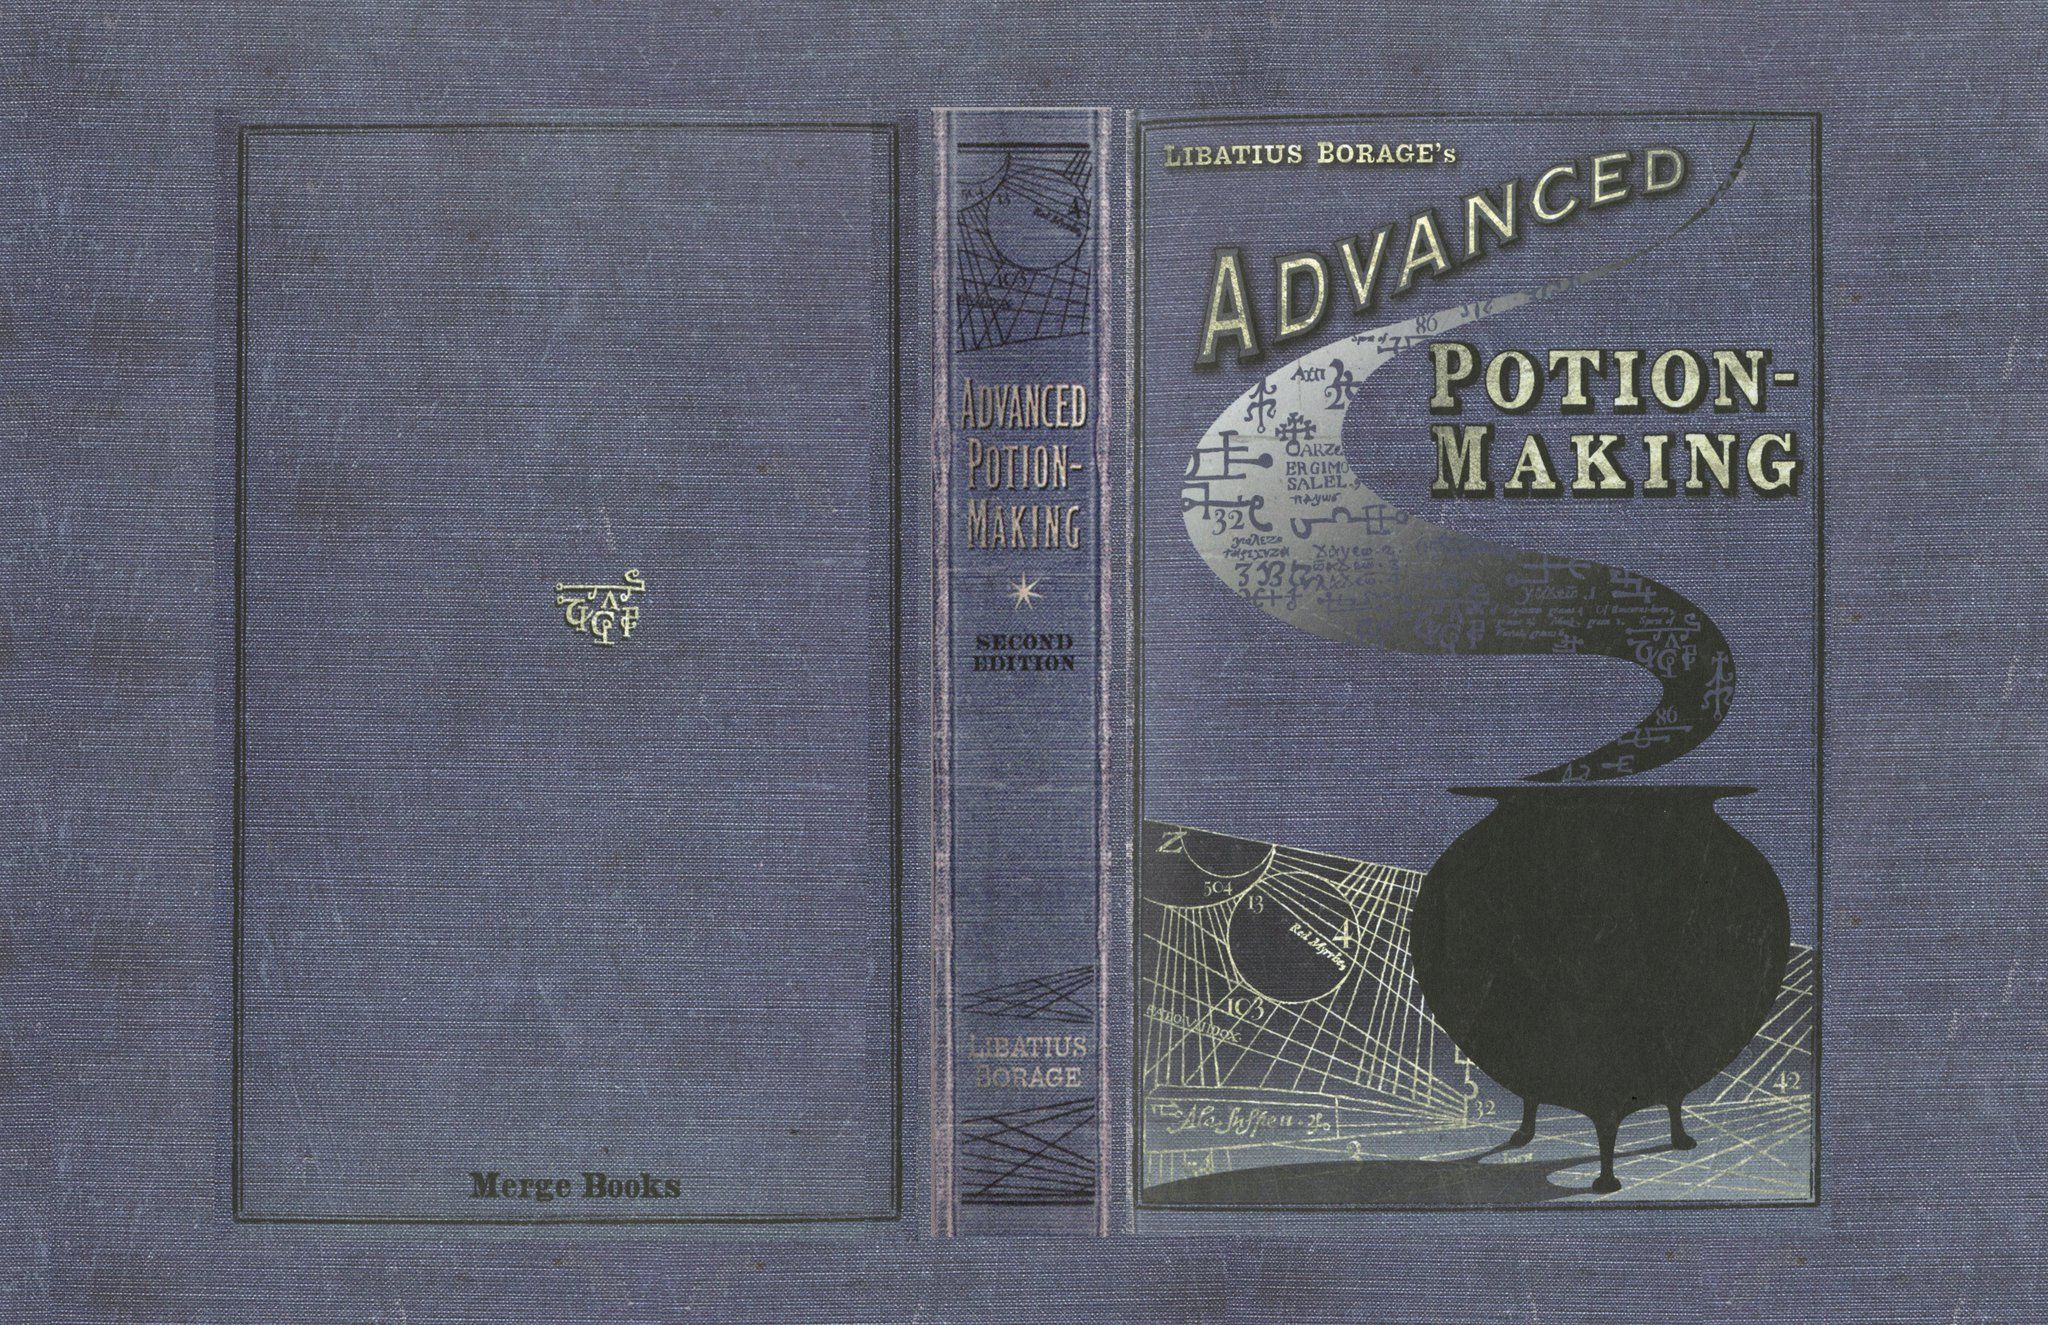 How To Make A New Book Cover : Advanced potion making book cover files harry potter